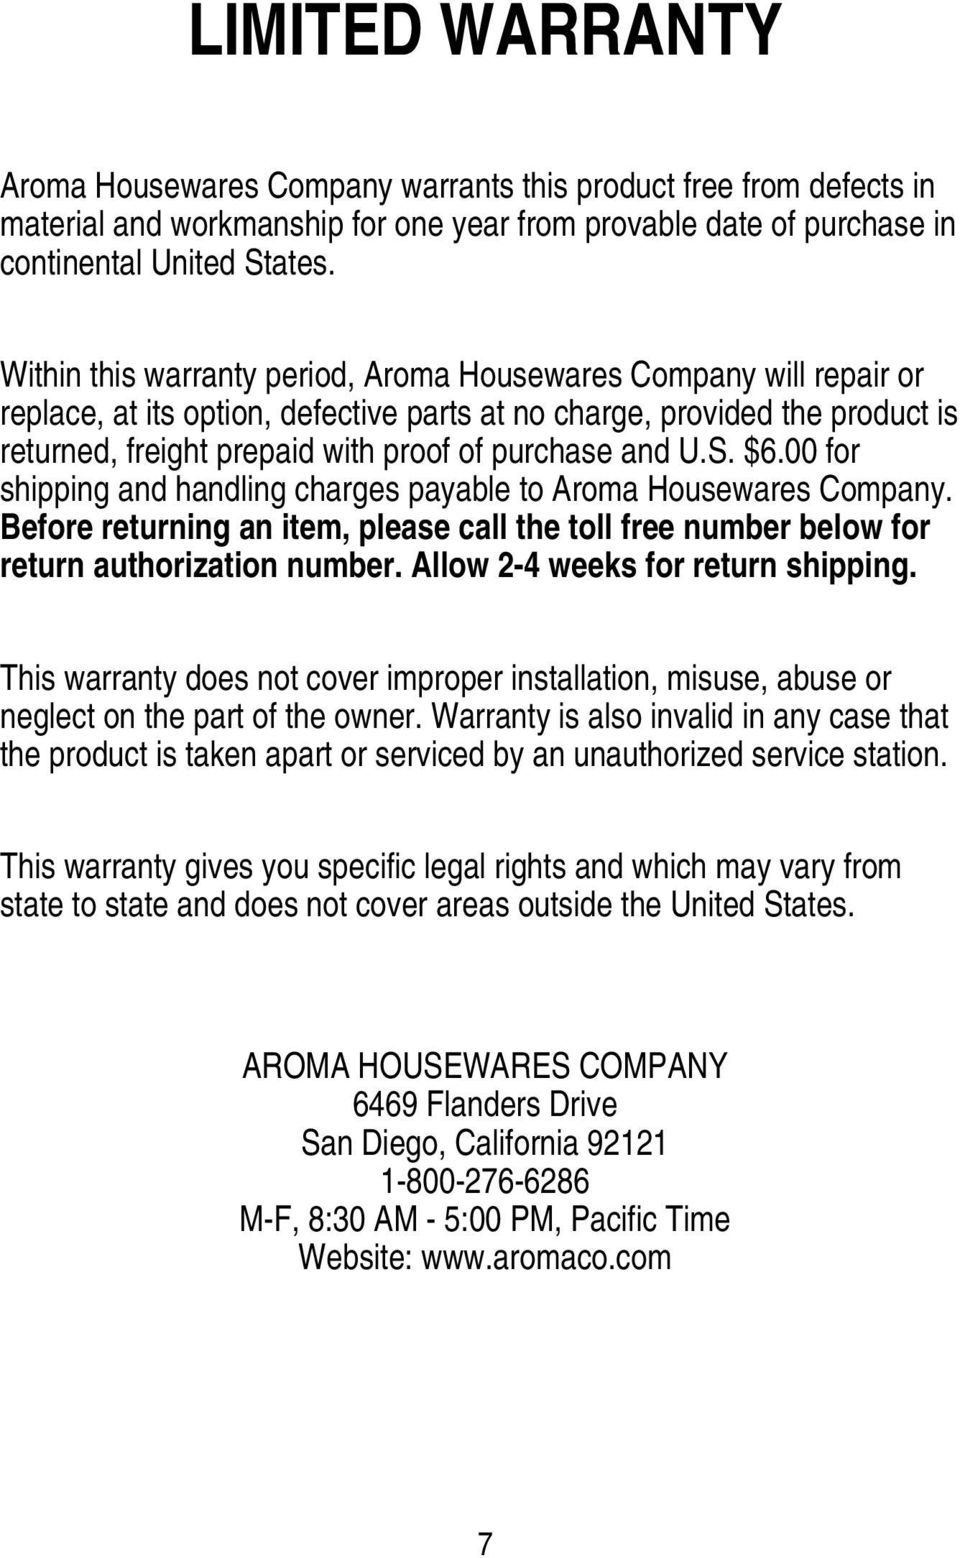 U.S. $6.00 for shipping and handling charges payable to Aroma Housewares Company. Before returning an item, please call the toll free number below for return authorization number.